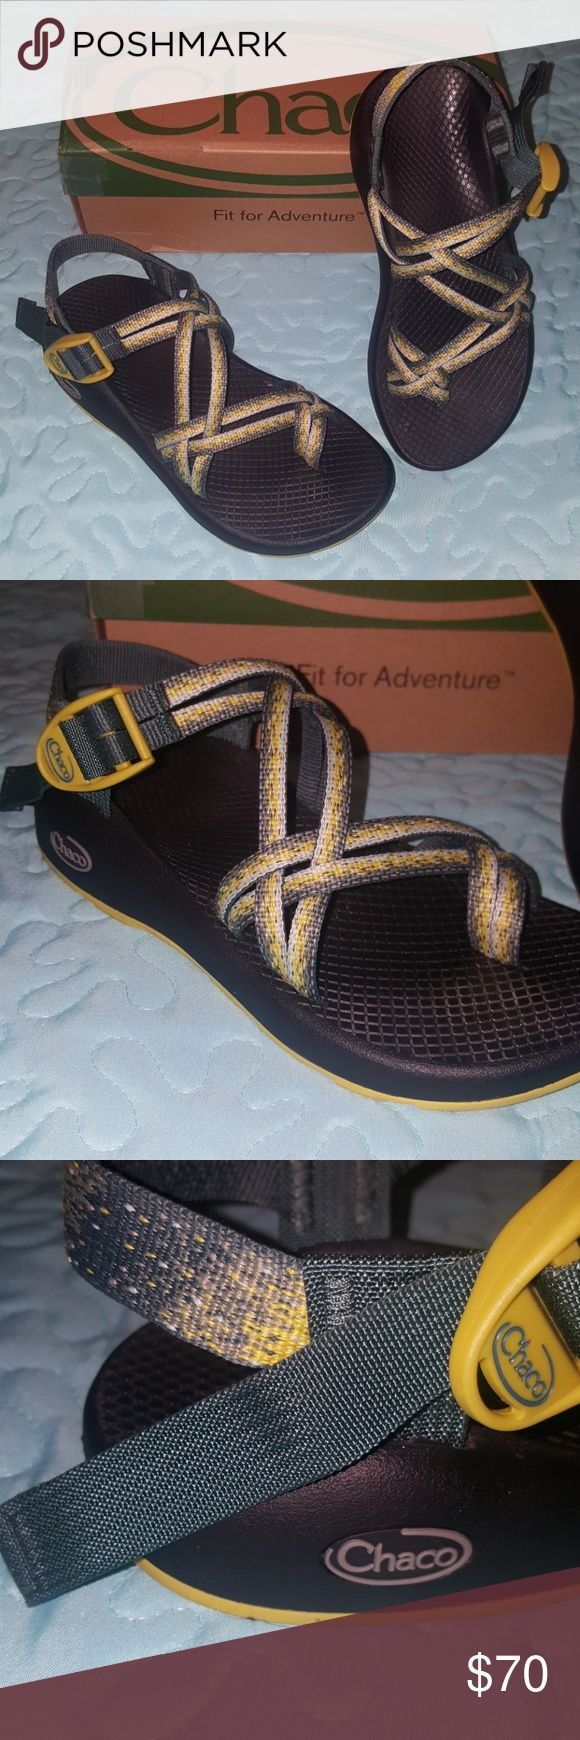 Women's Chacos ZX2 Worn once! Like brand new!! The colors are stardust... Yellow & a dark army greenish color. Soles are yellow and black. Will ship in original box. Chacos Shoes Sandals